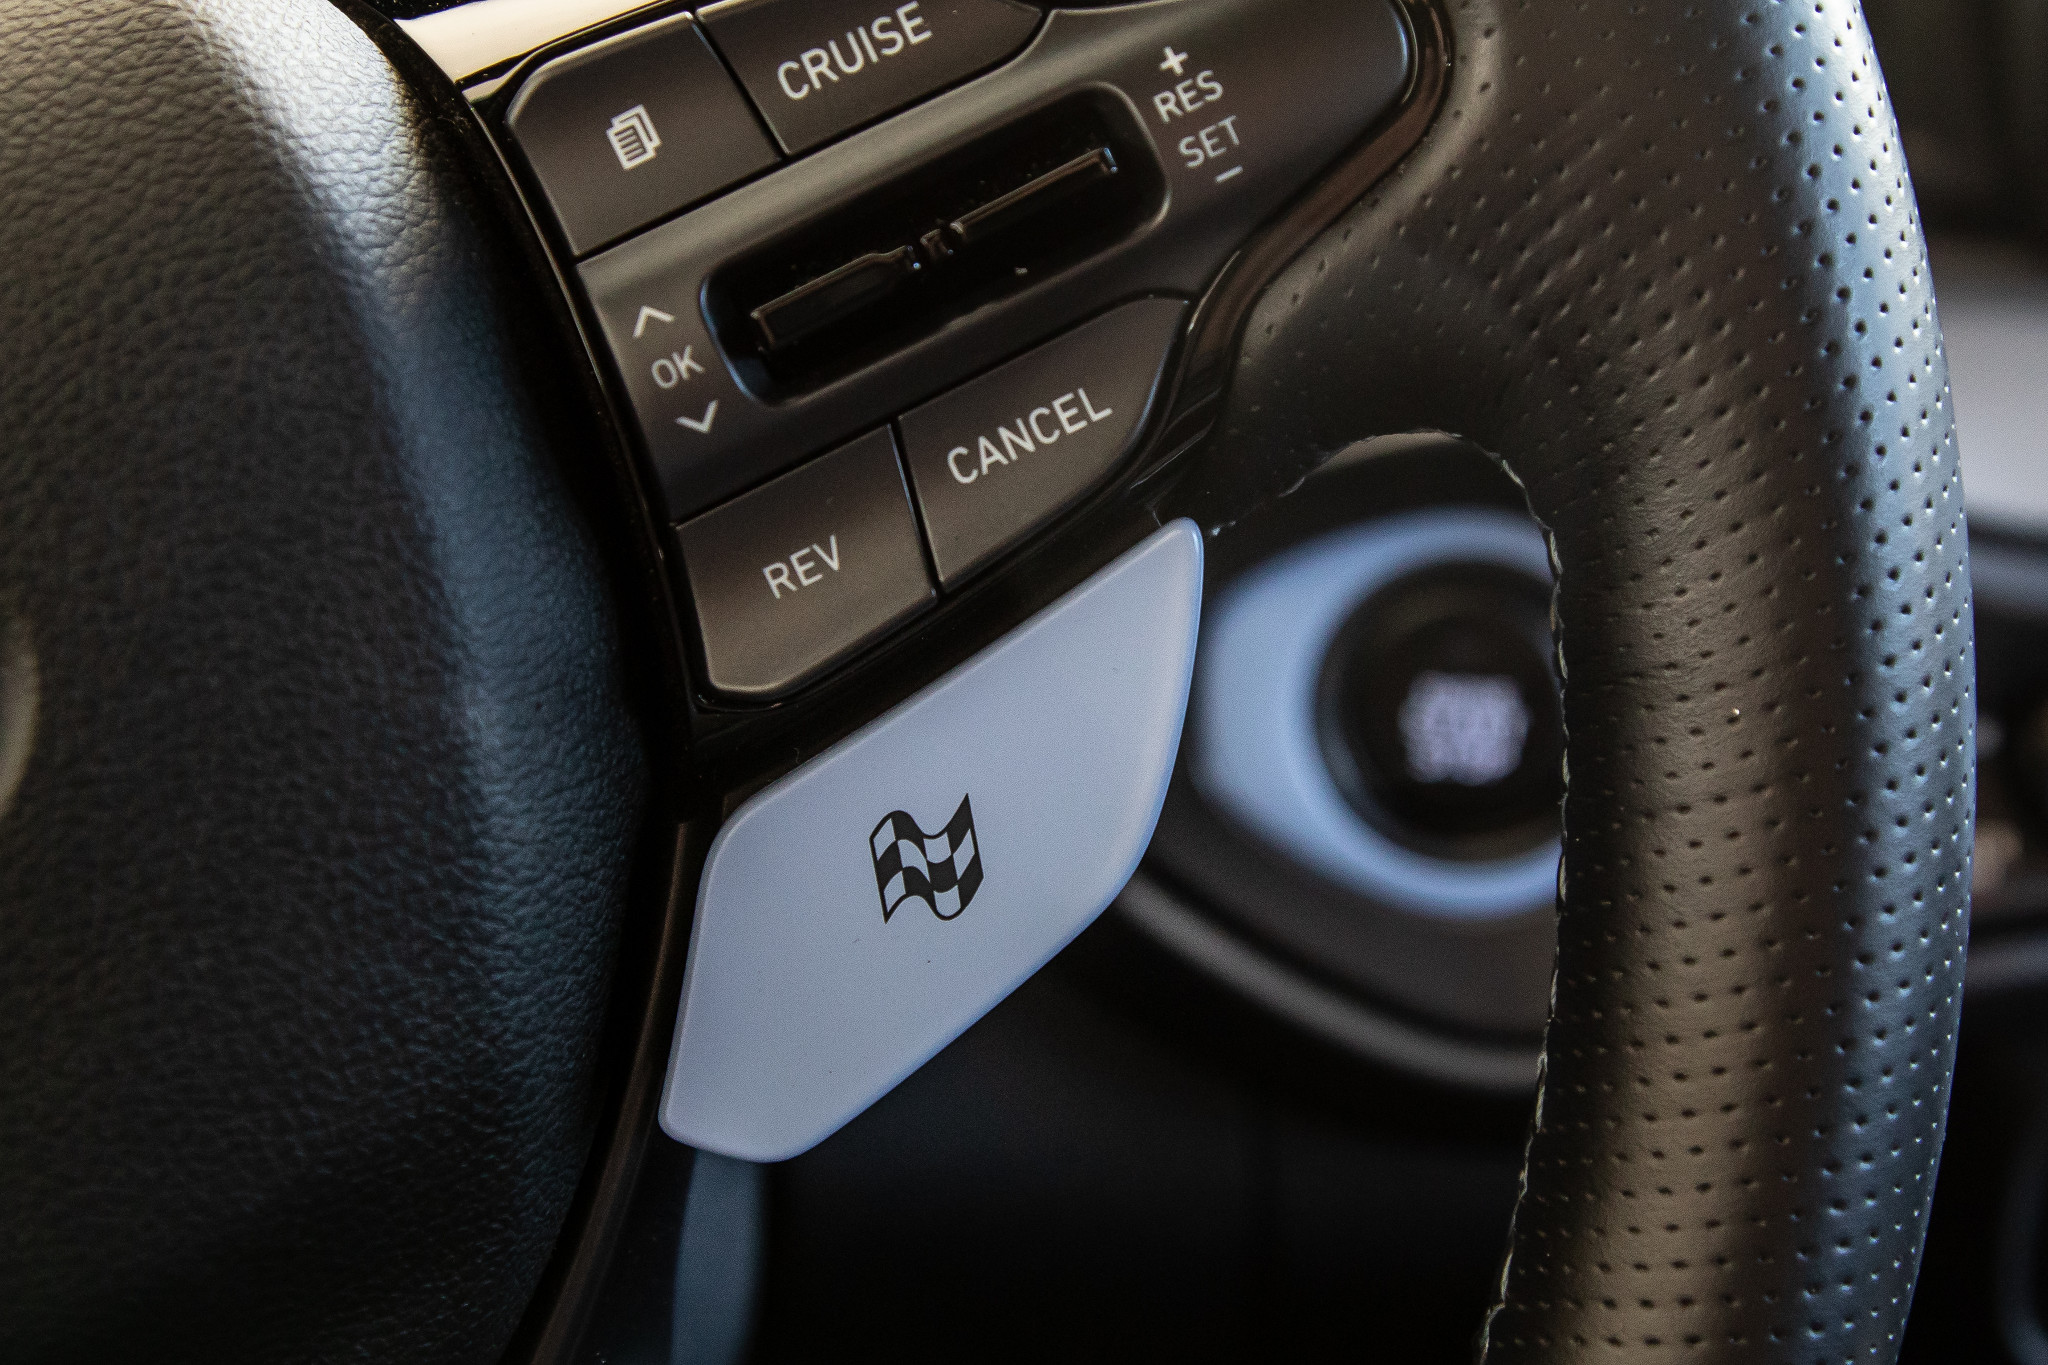 Every Sports Car Needs This Button From the Hyundai Veloster N